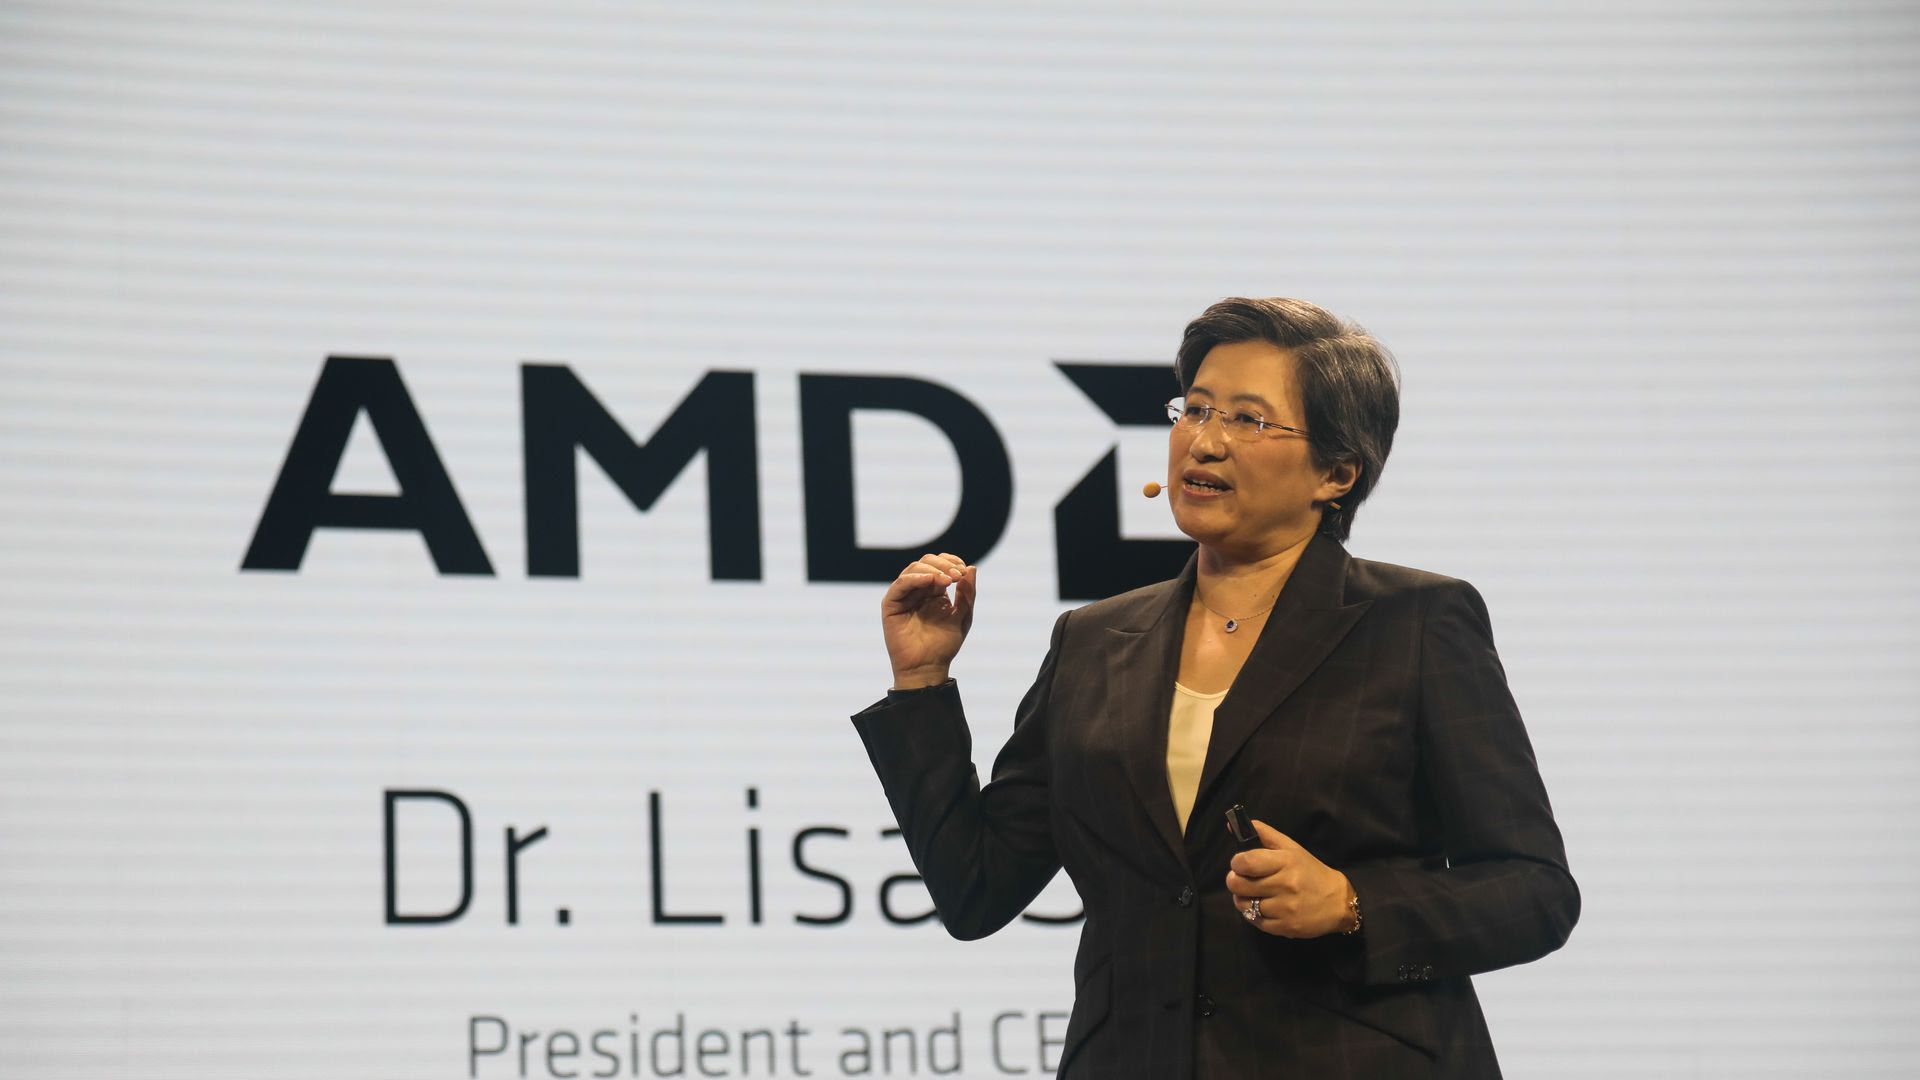 This image shows Su speaking on stage while wearing a blazer and microphone. The large screen behind her shows the AMD logo and her name.